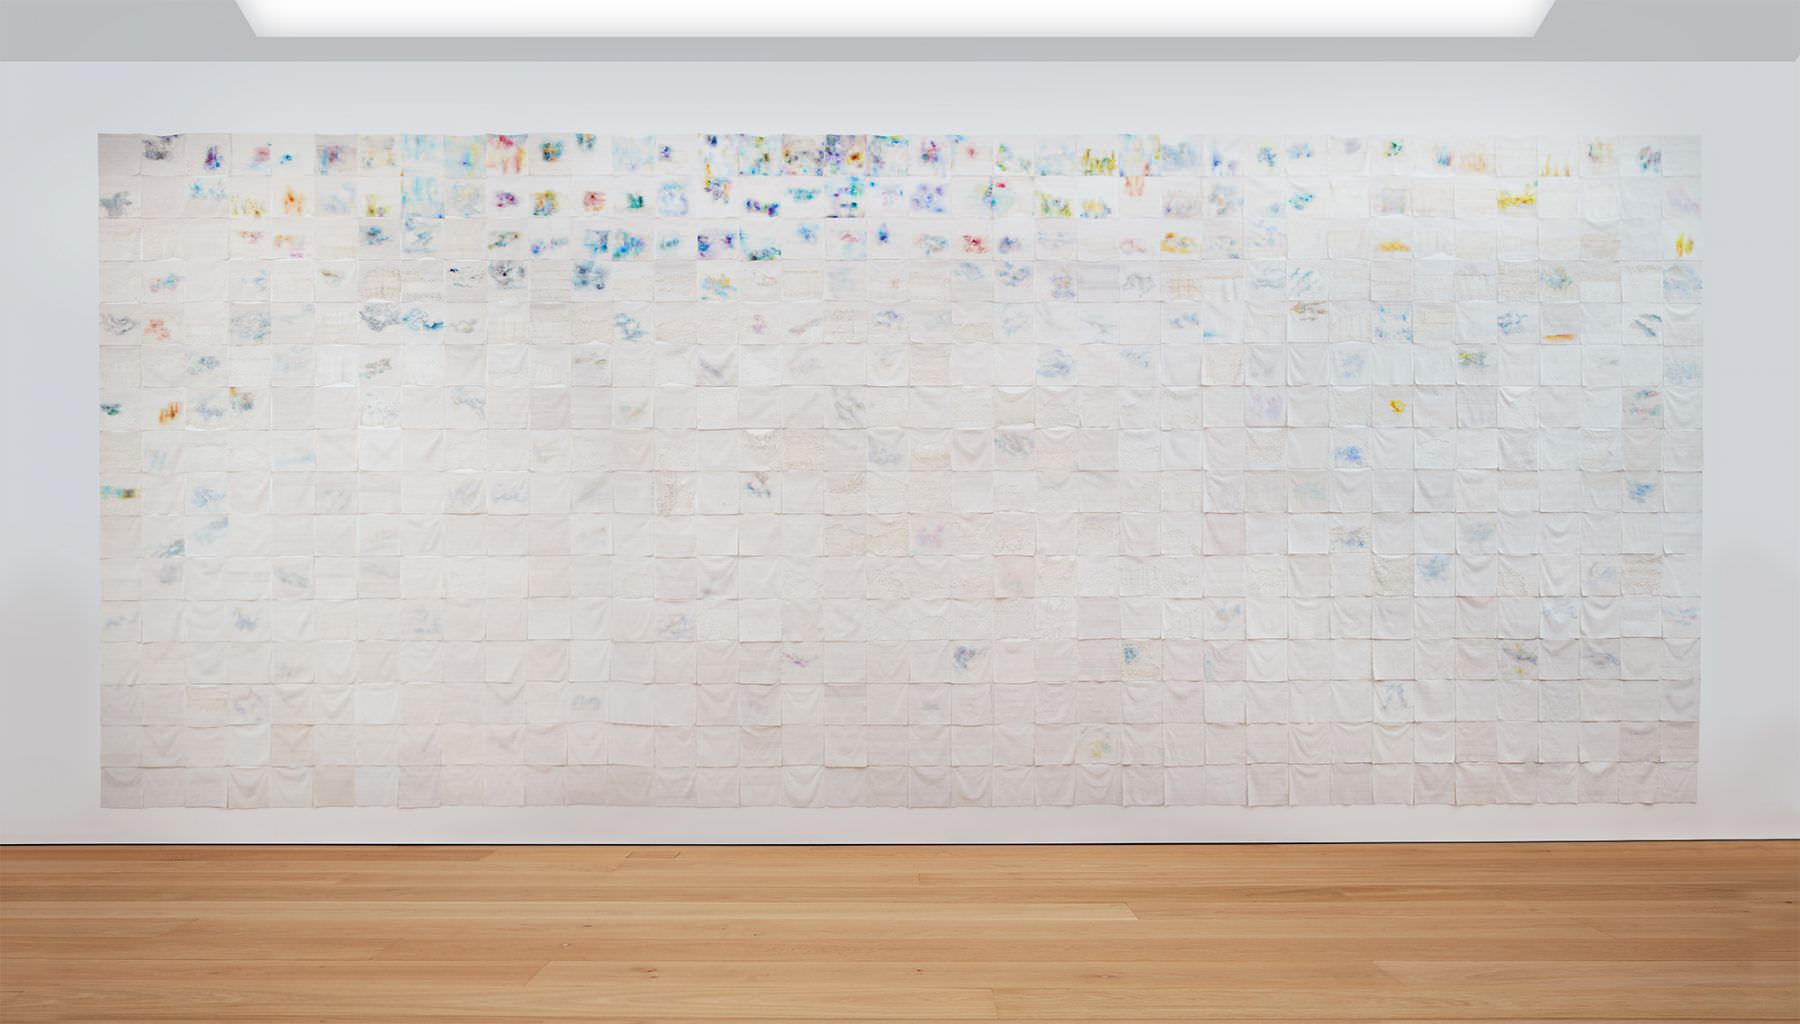 LIZA LOU The Clouds, 2015-2018 site-specific installation of oil paint on woven glass beads and thread on canvas 600 parts, each 35 x 35 cm; Courtesy the artist and Lehmann Maupin, New York, Hong Kong, and Seoul. Photo: Matthew Herrmann